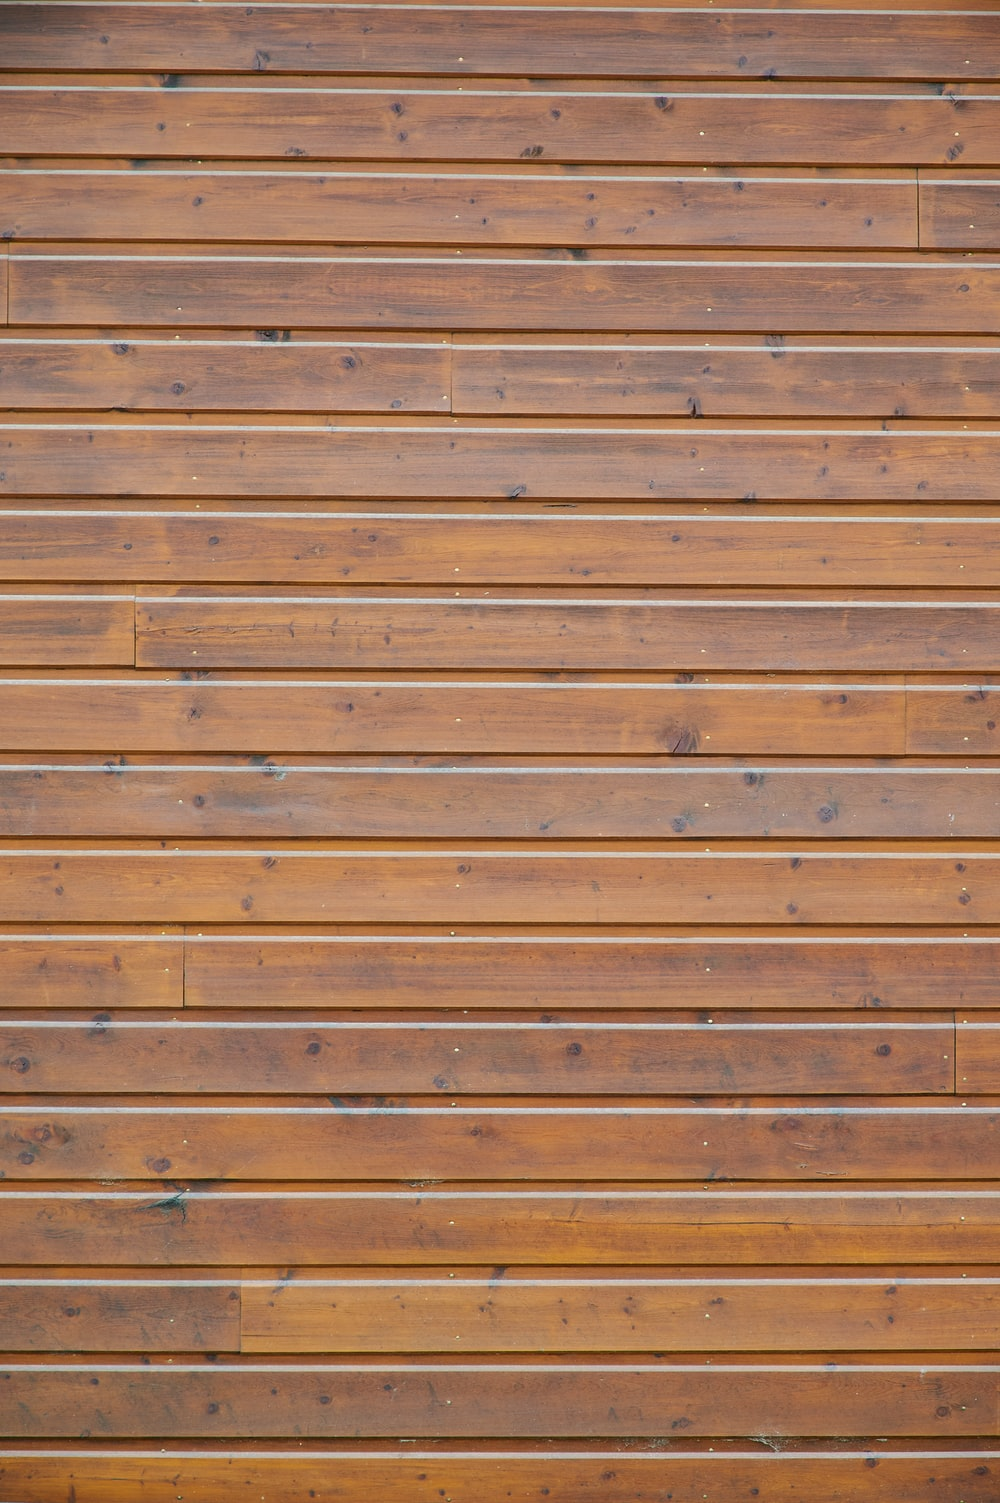 brown wooden wall during daytime